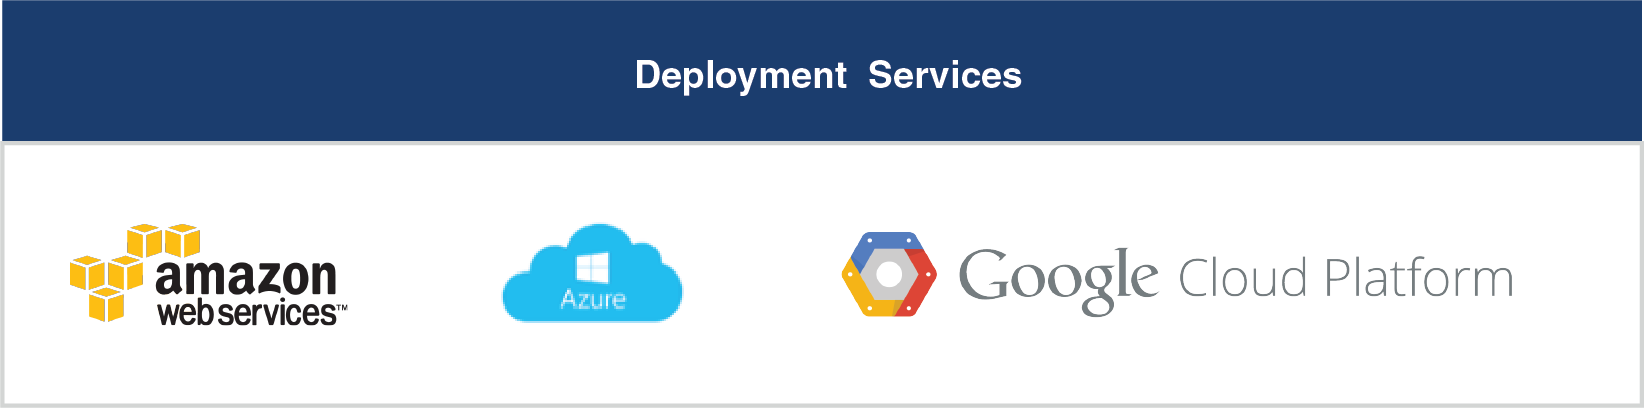 deployment-services-for-mobile-app